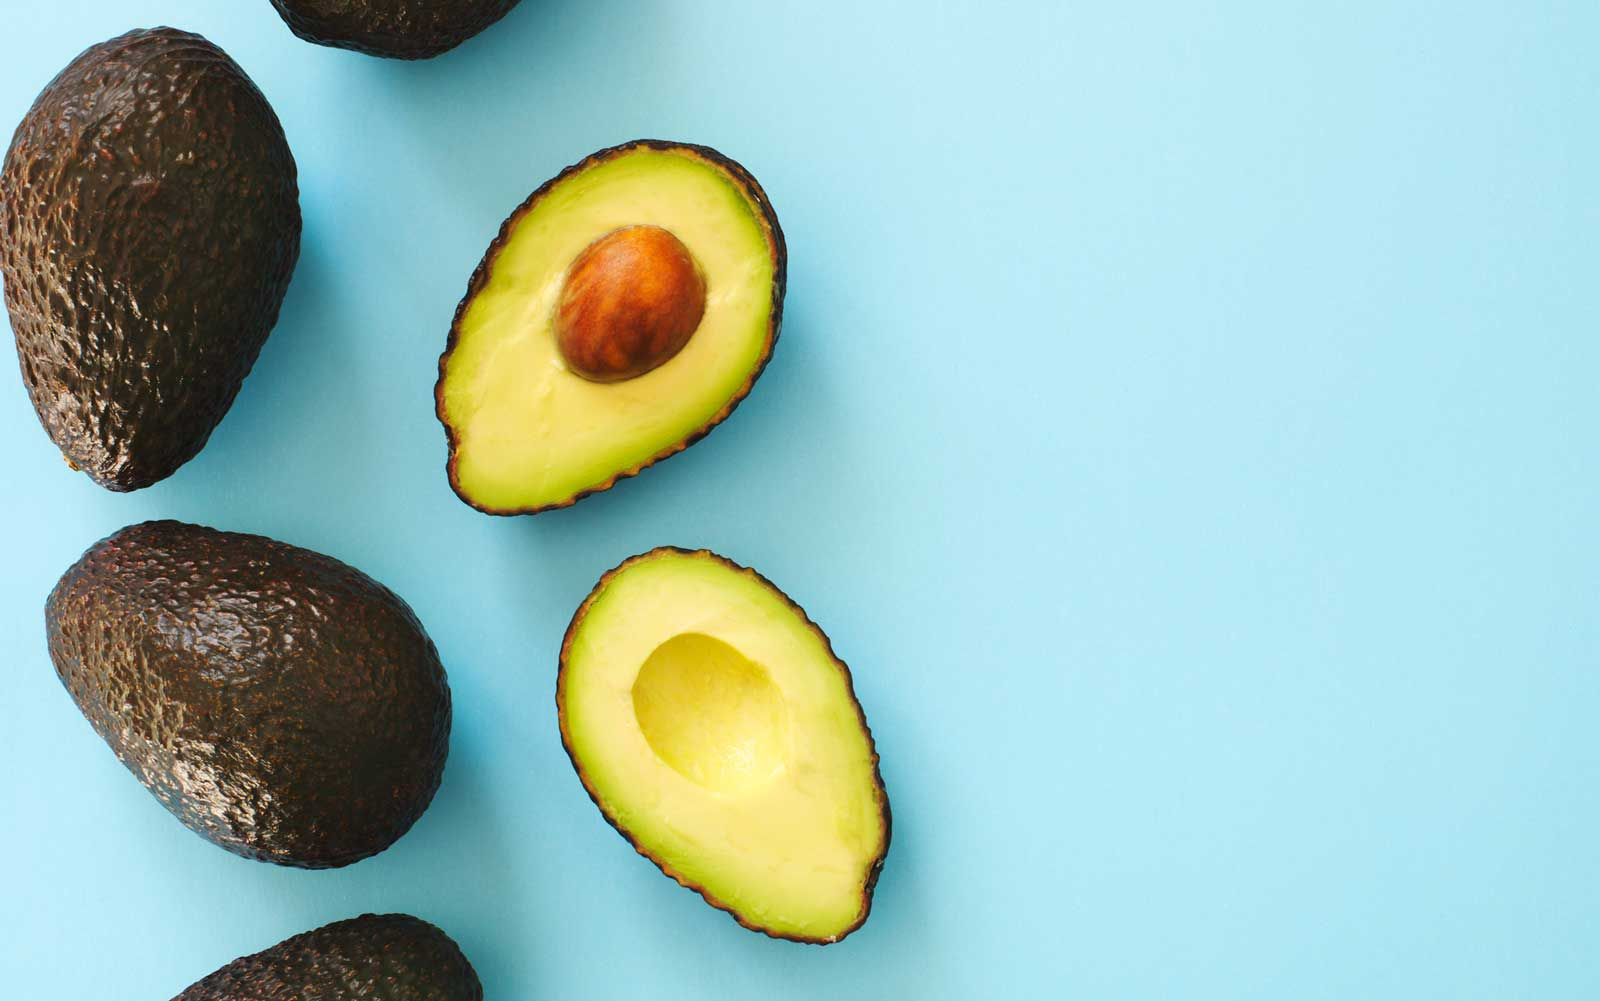 You Could Get Paid to Eat a Free Avocado Every Day